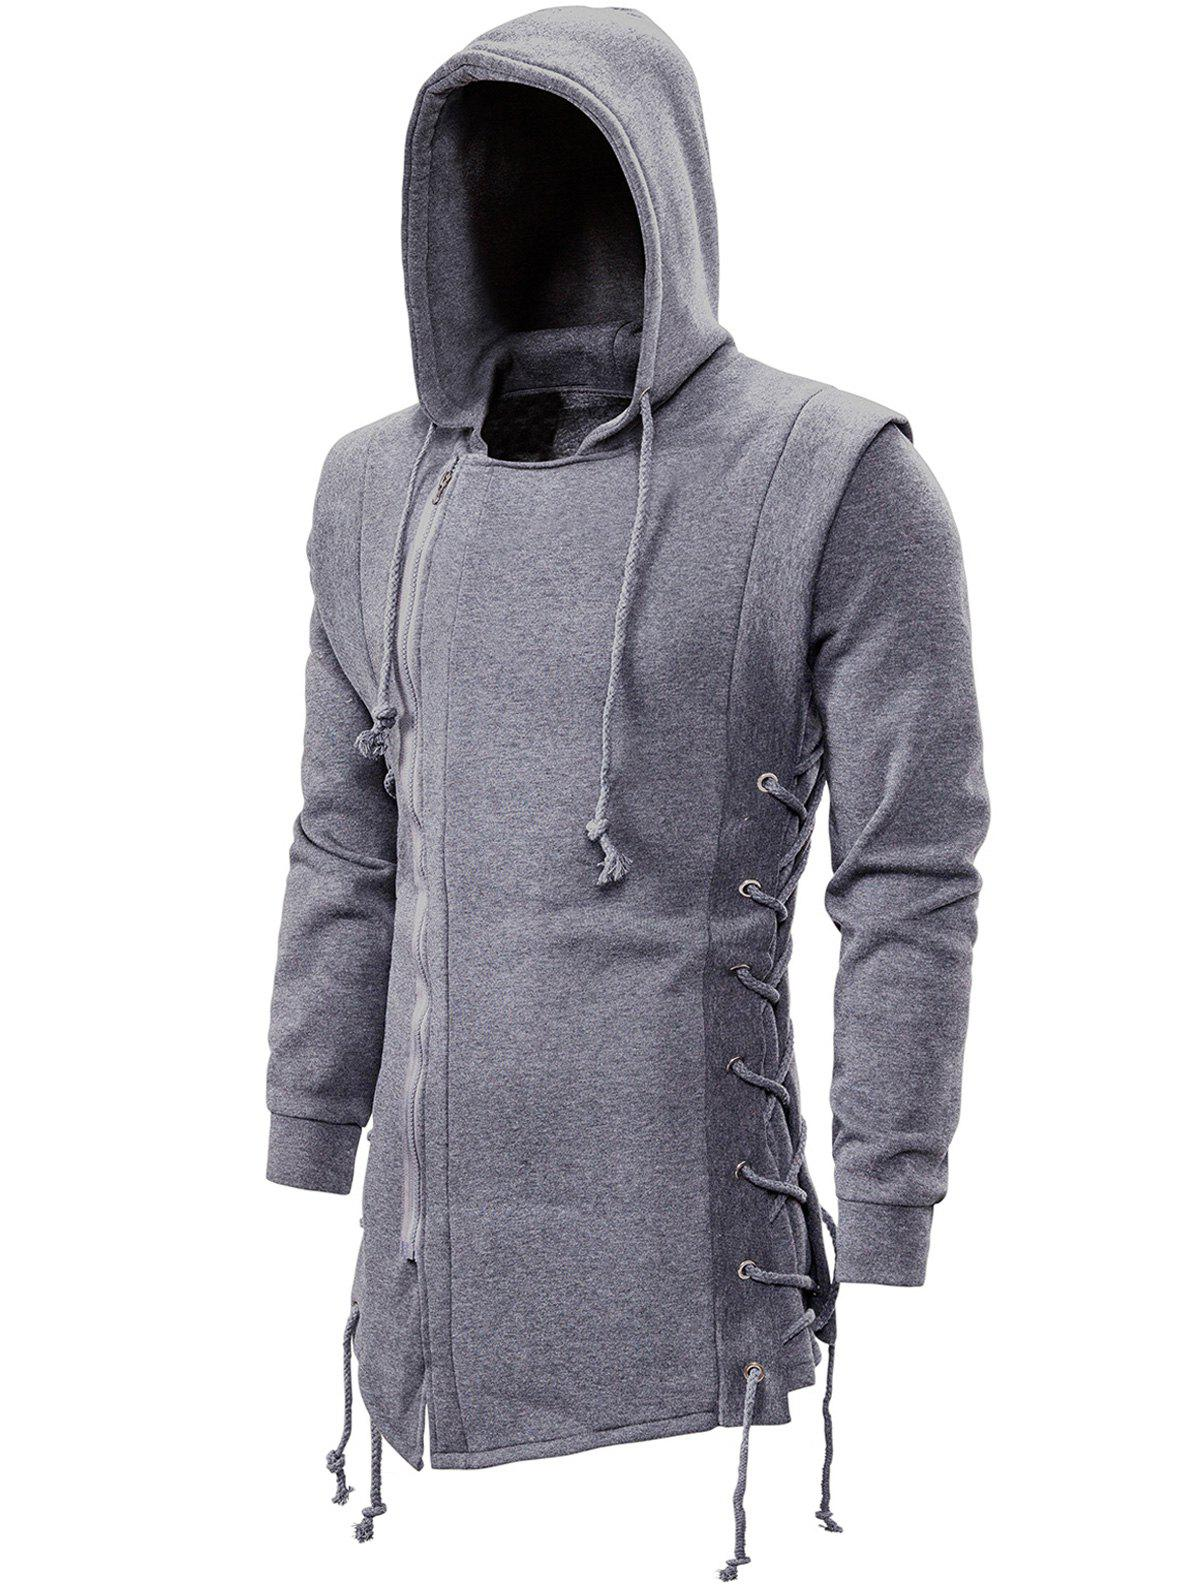 Side Lace Up Fleece Gothic Hoodie - LIGHT GRAY 2XL